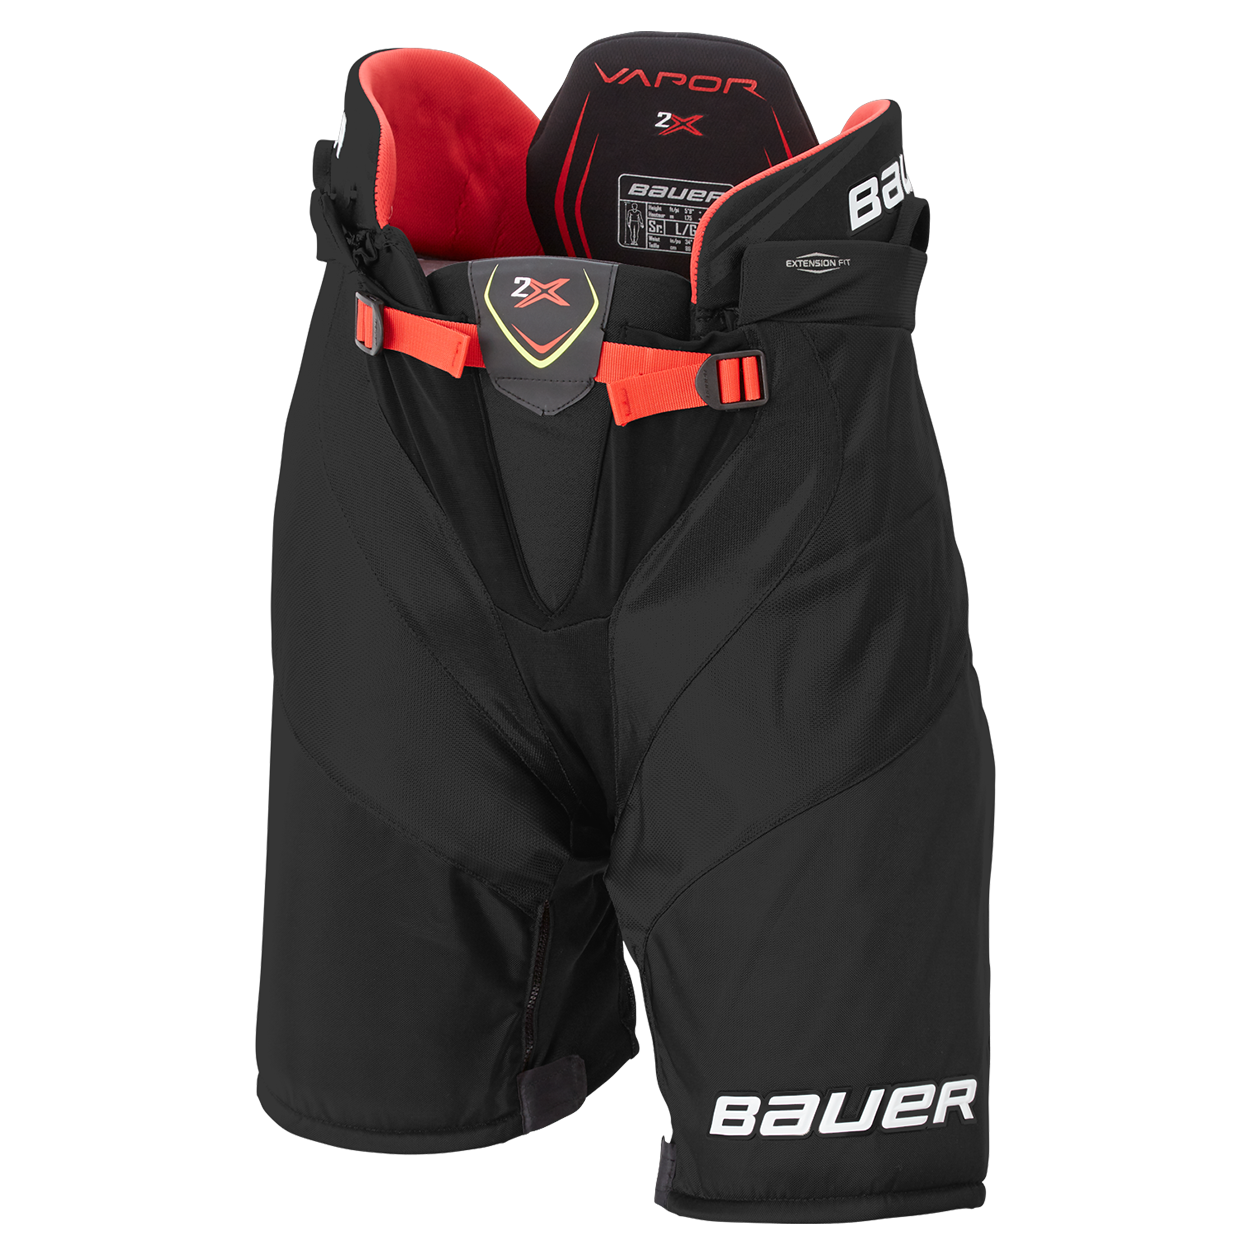 VAPOR 2X Pants Senior,Black,medium